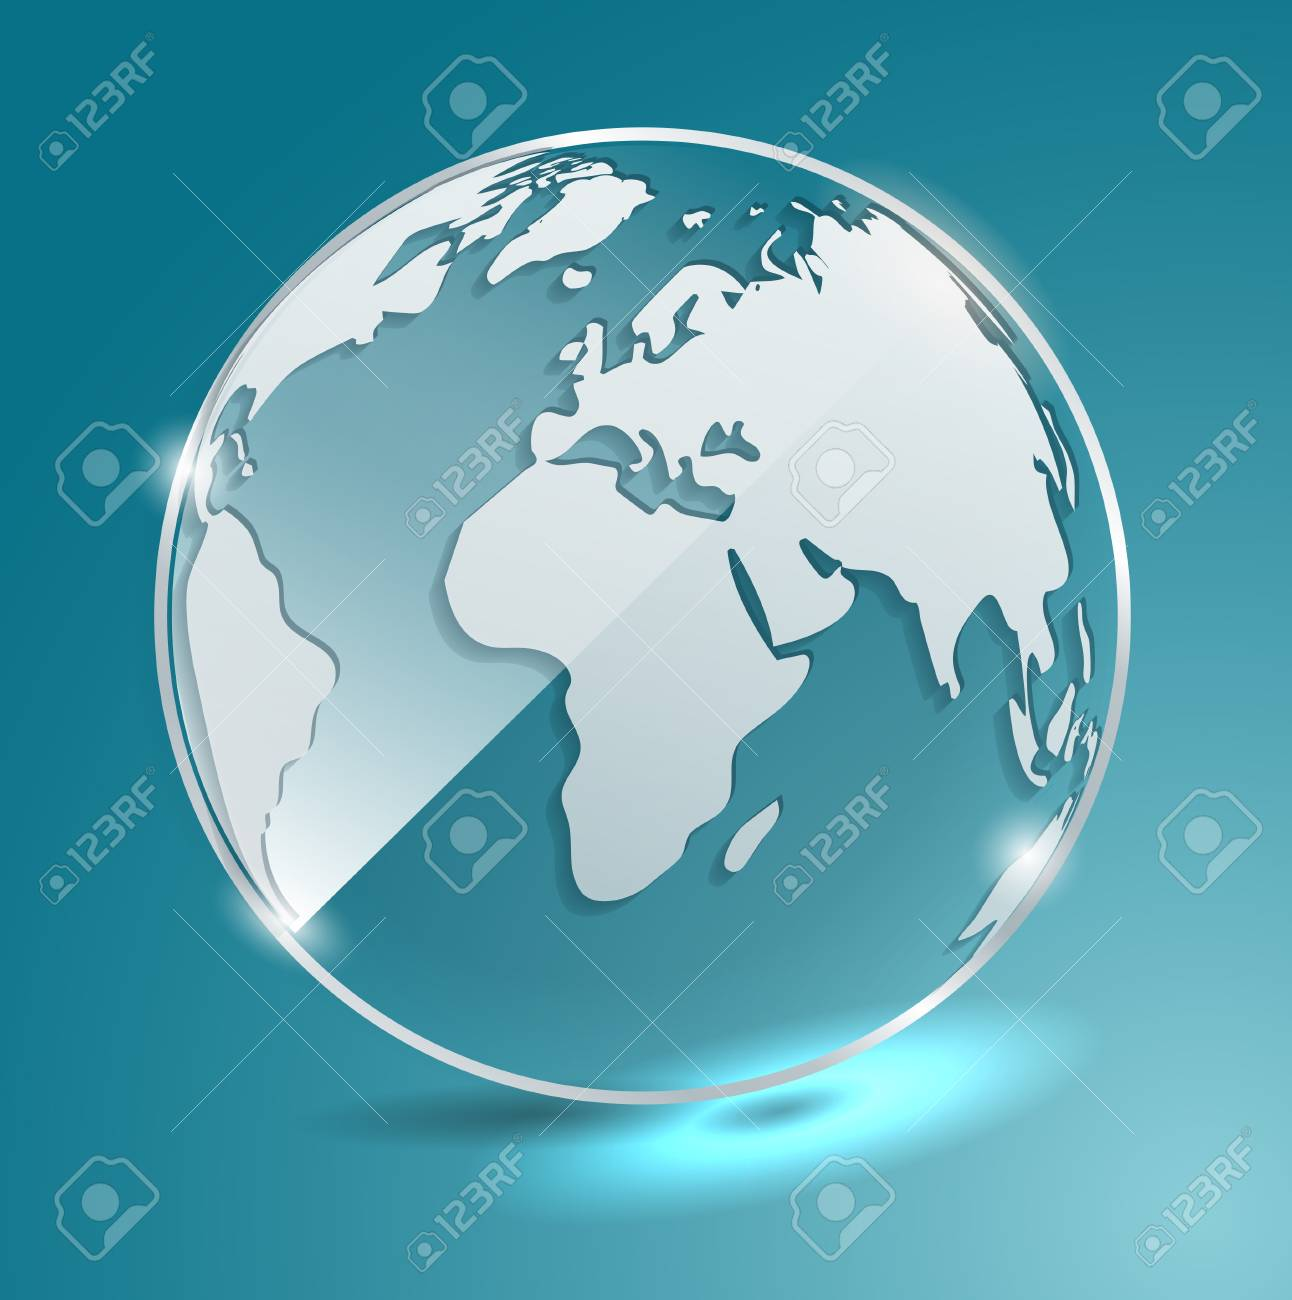 Geographic Map Of Earth.Glass Ball With World Map Earth Geographic Map Globe Vector